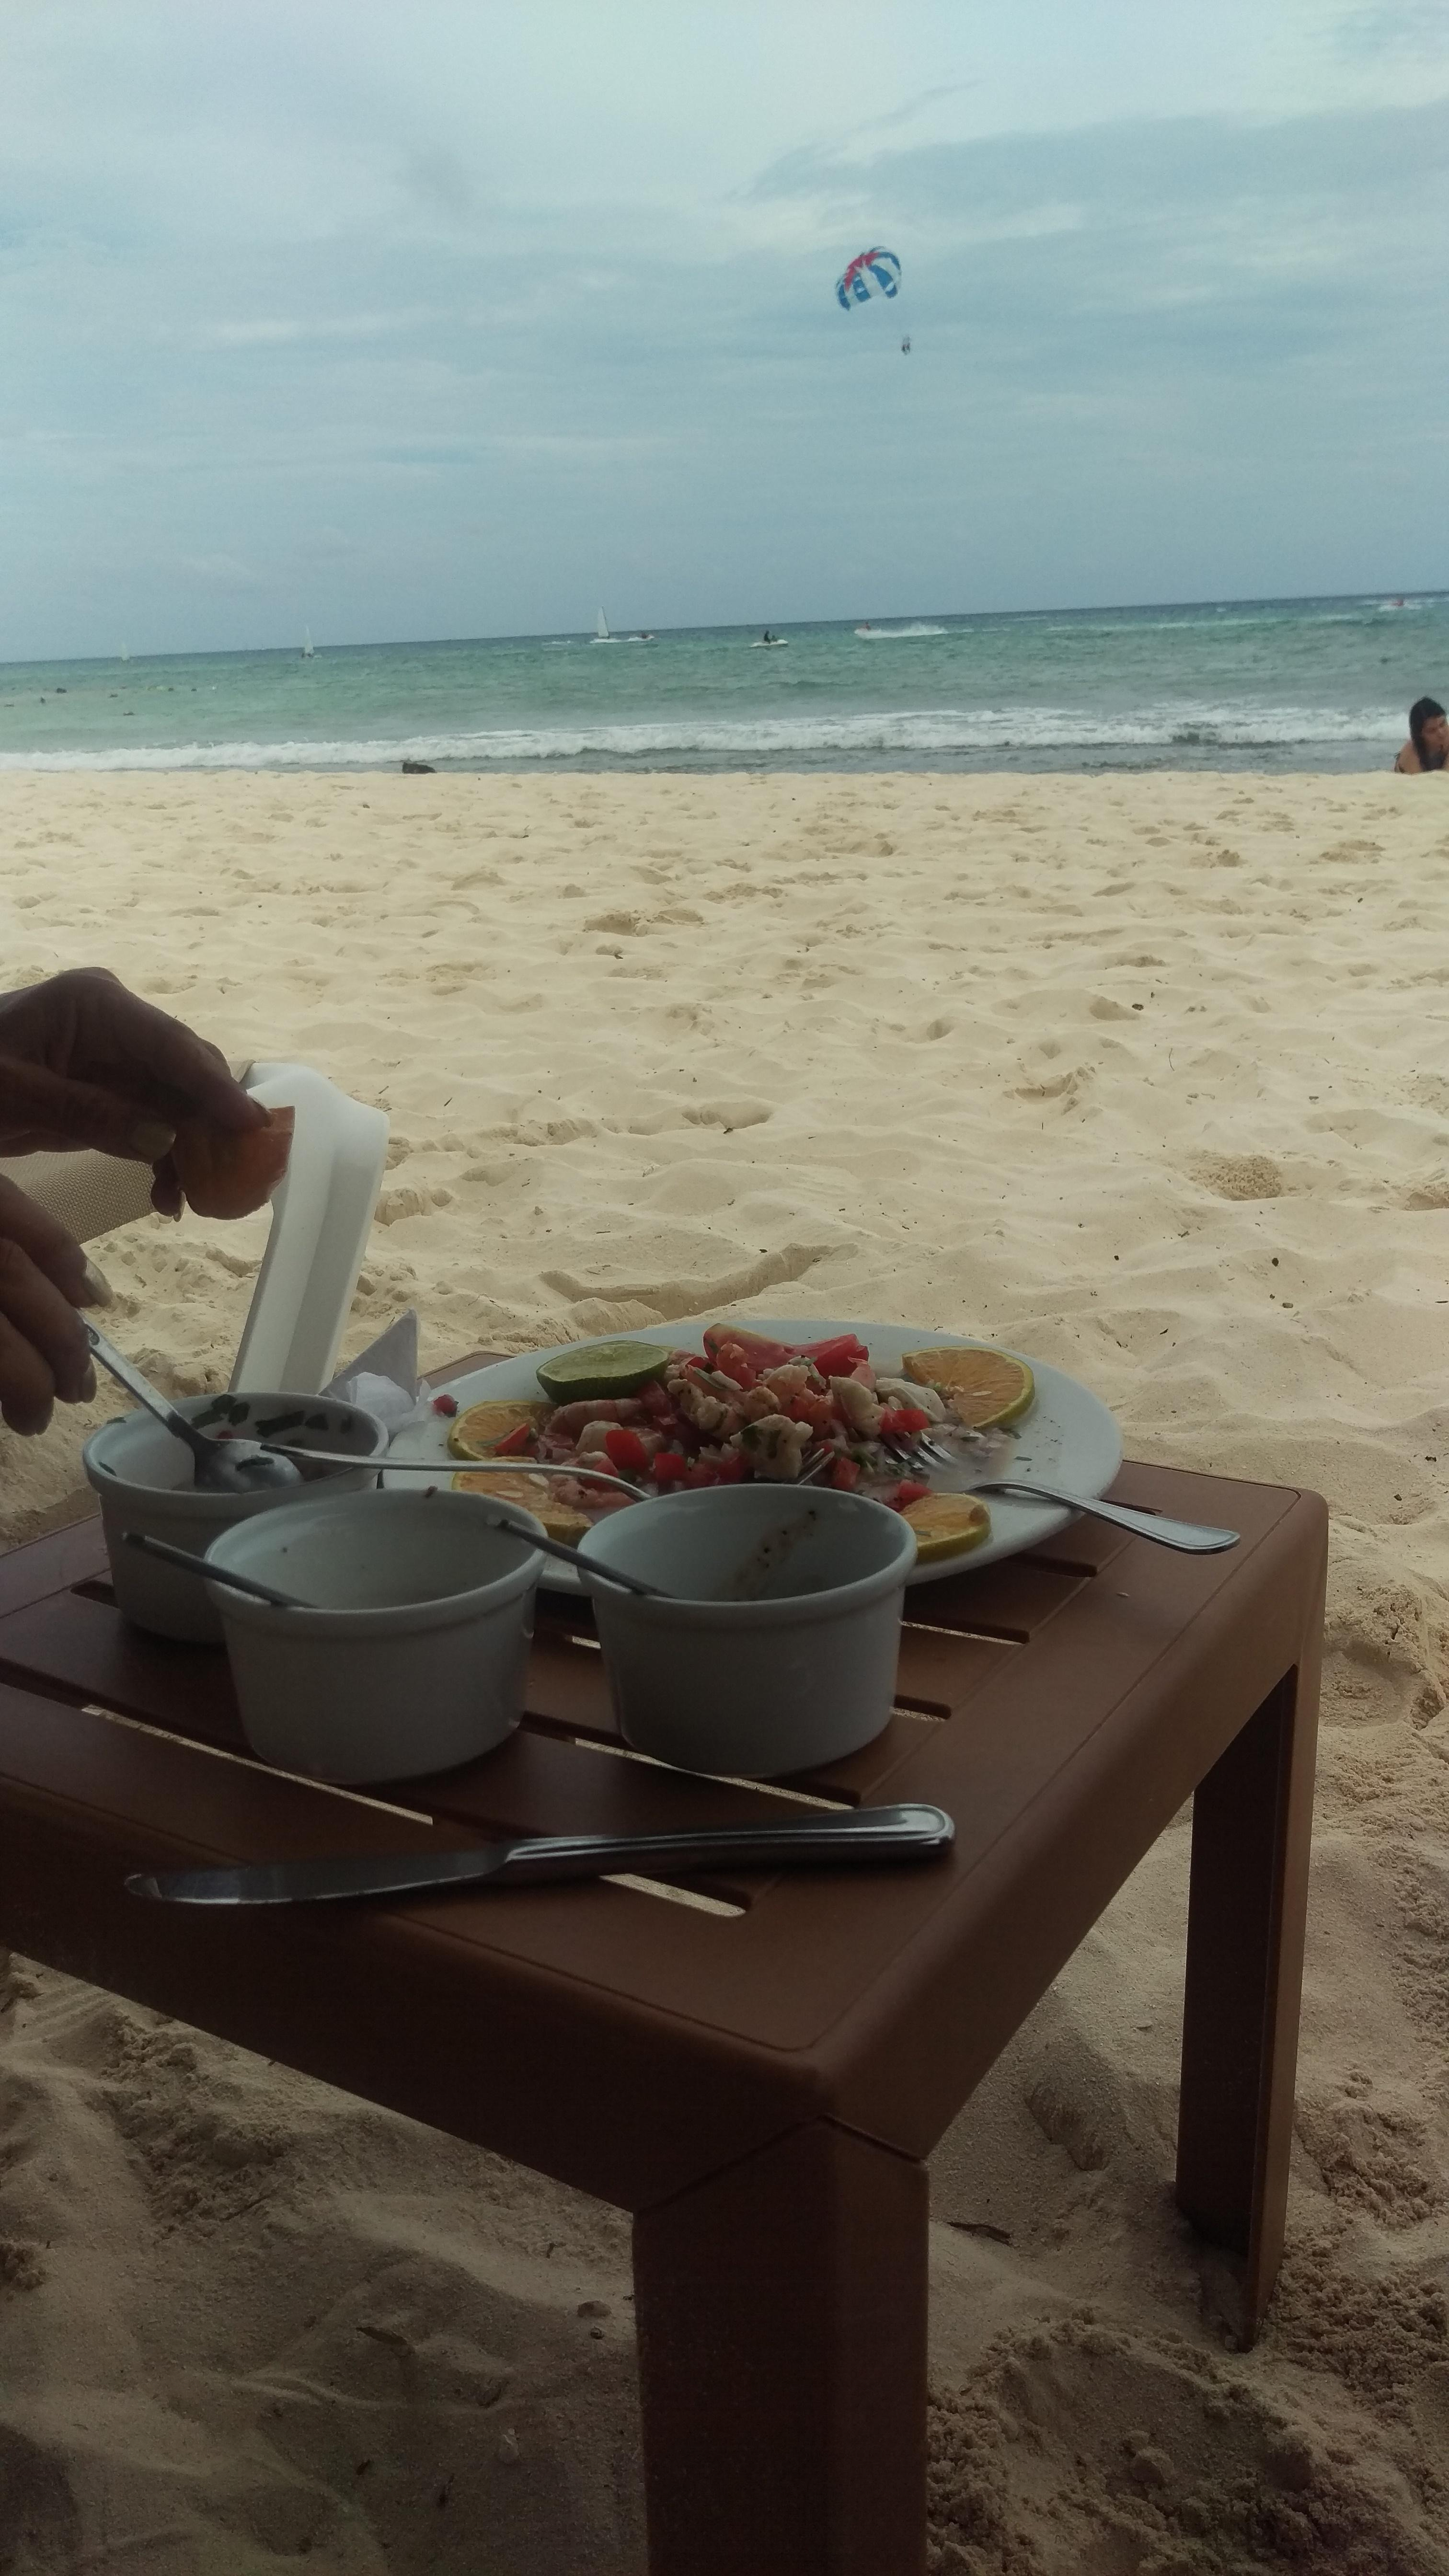 Lunch delivered on the beach!